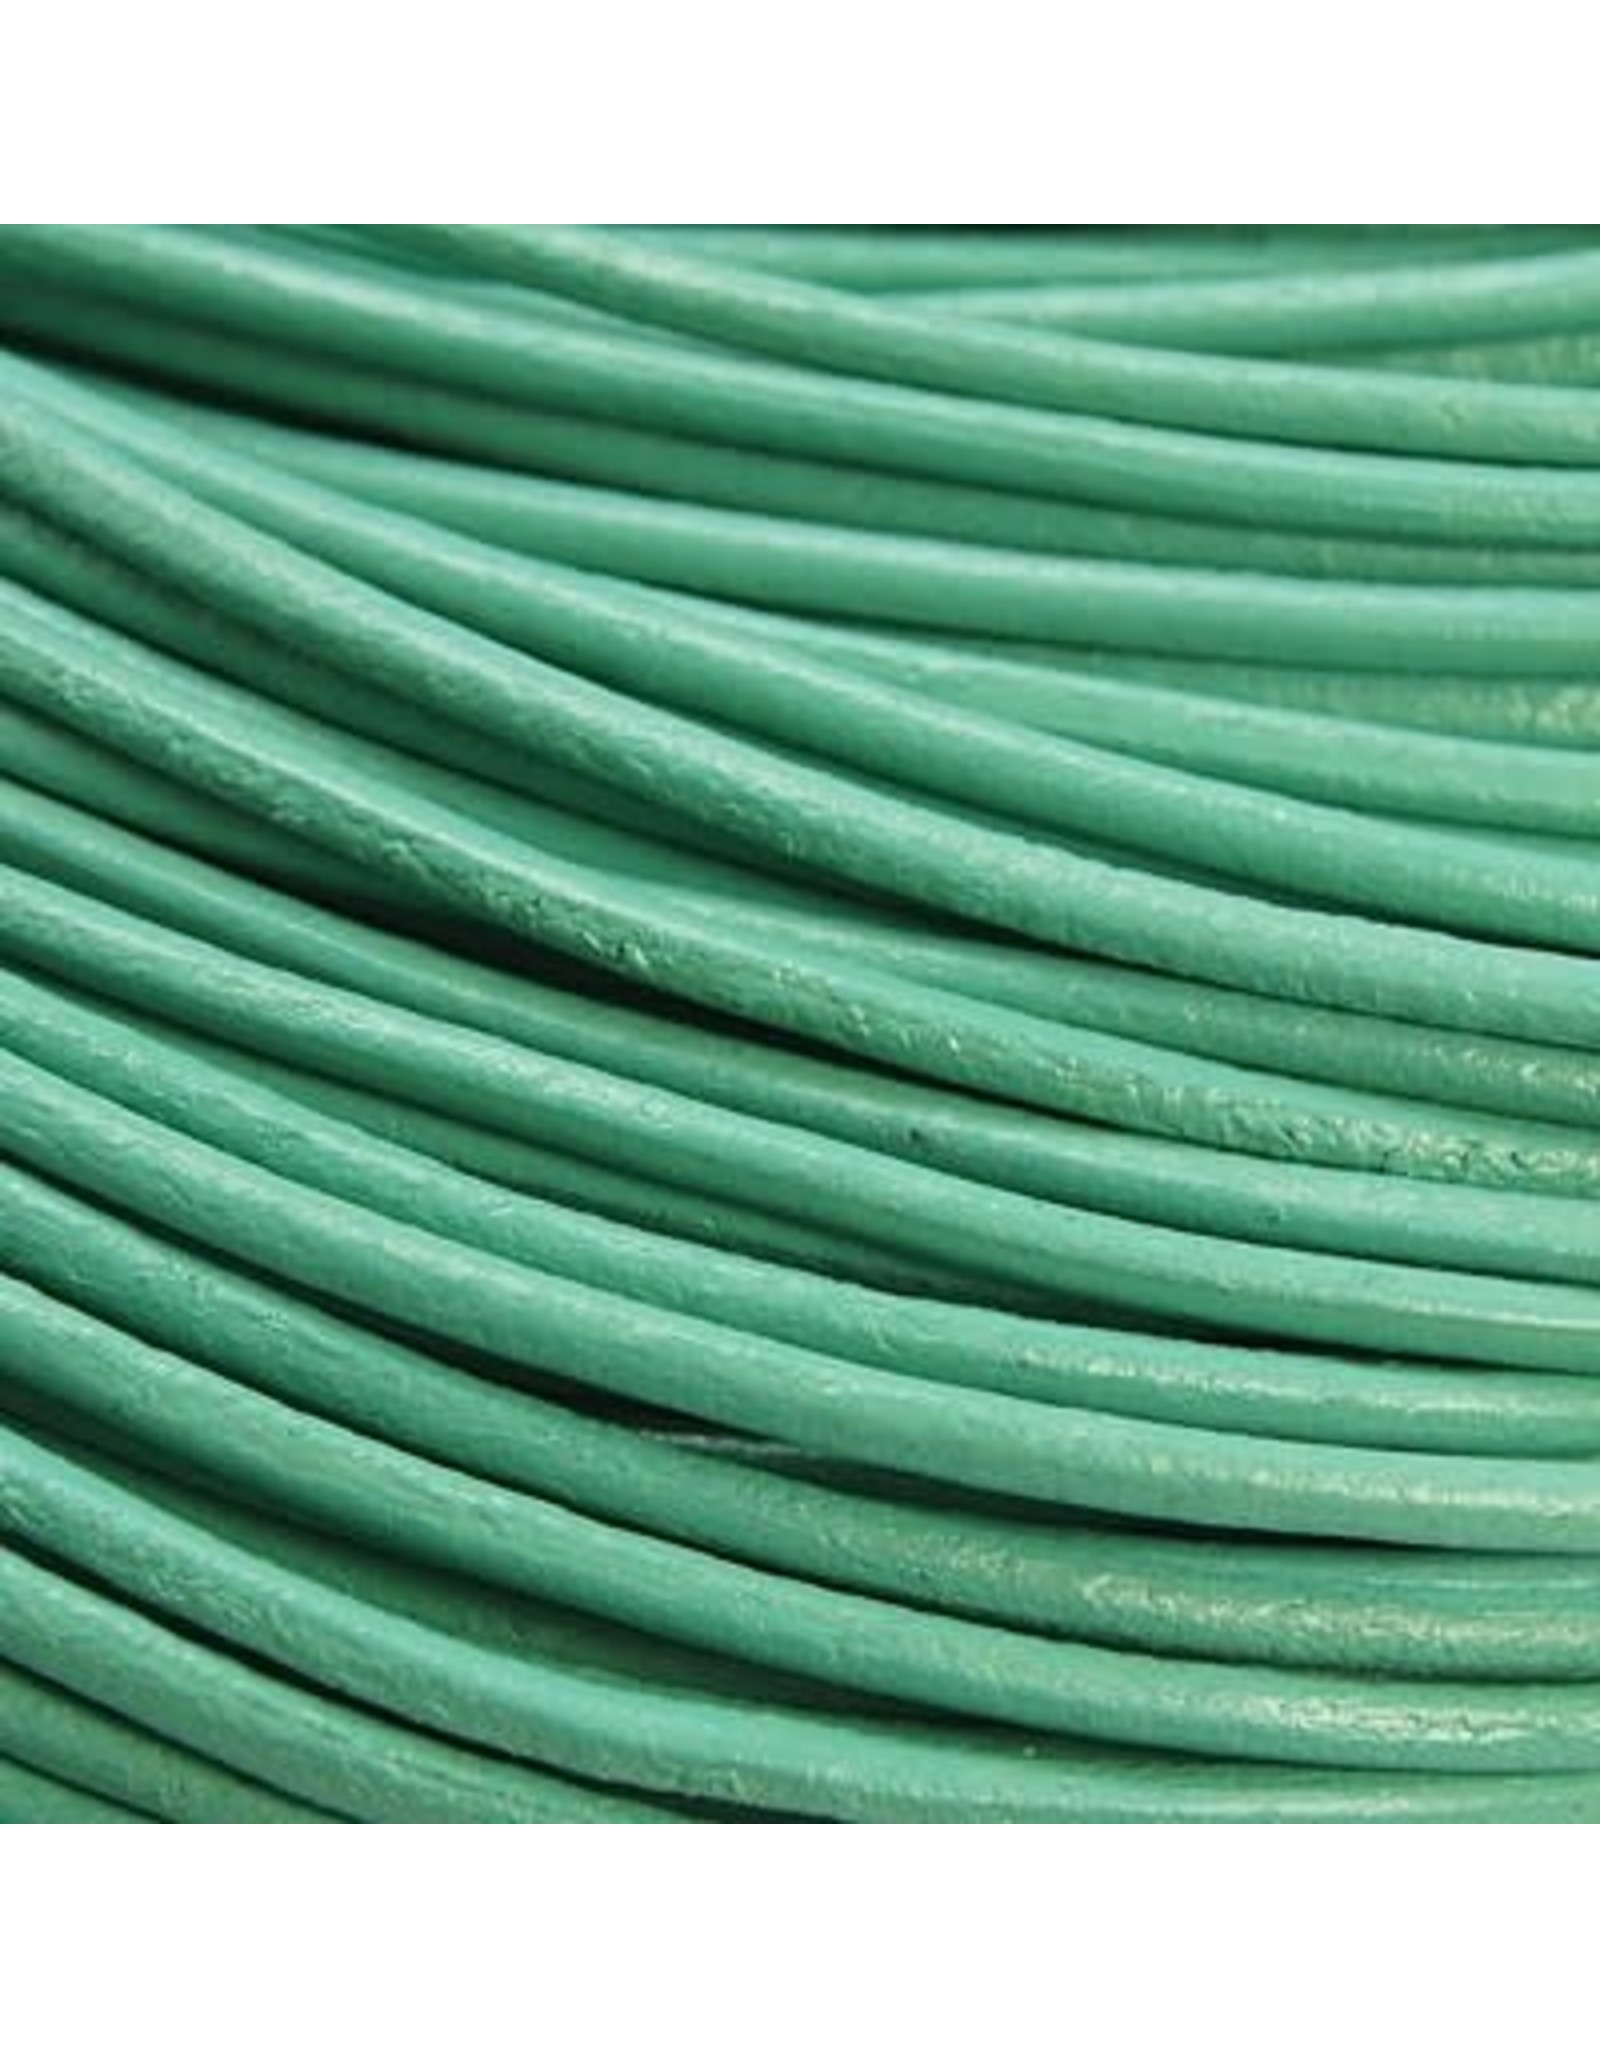 204sb 2mm Leather Light Turquoise Blue 10 meter